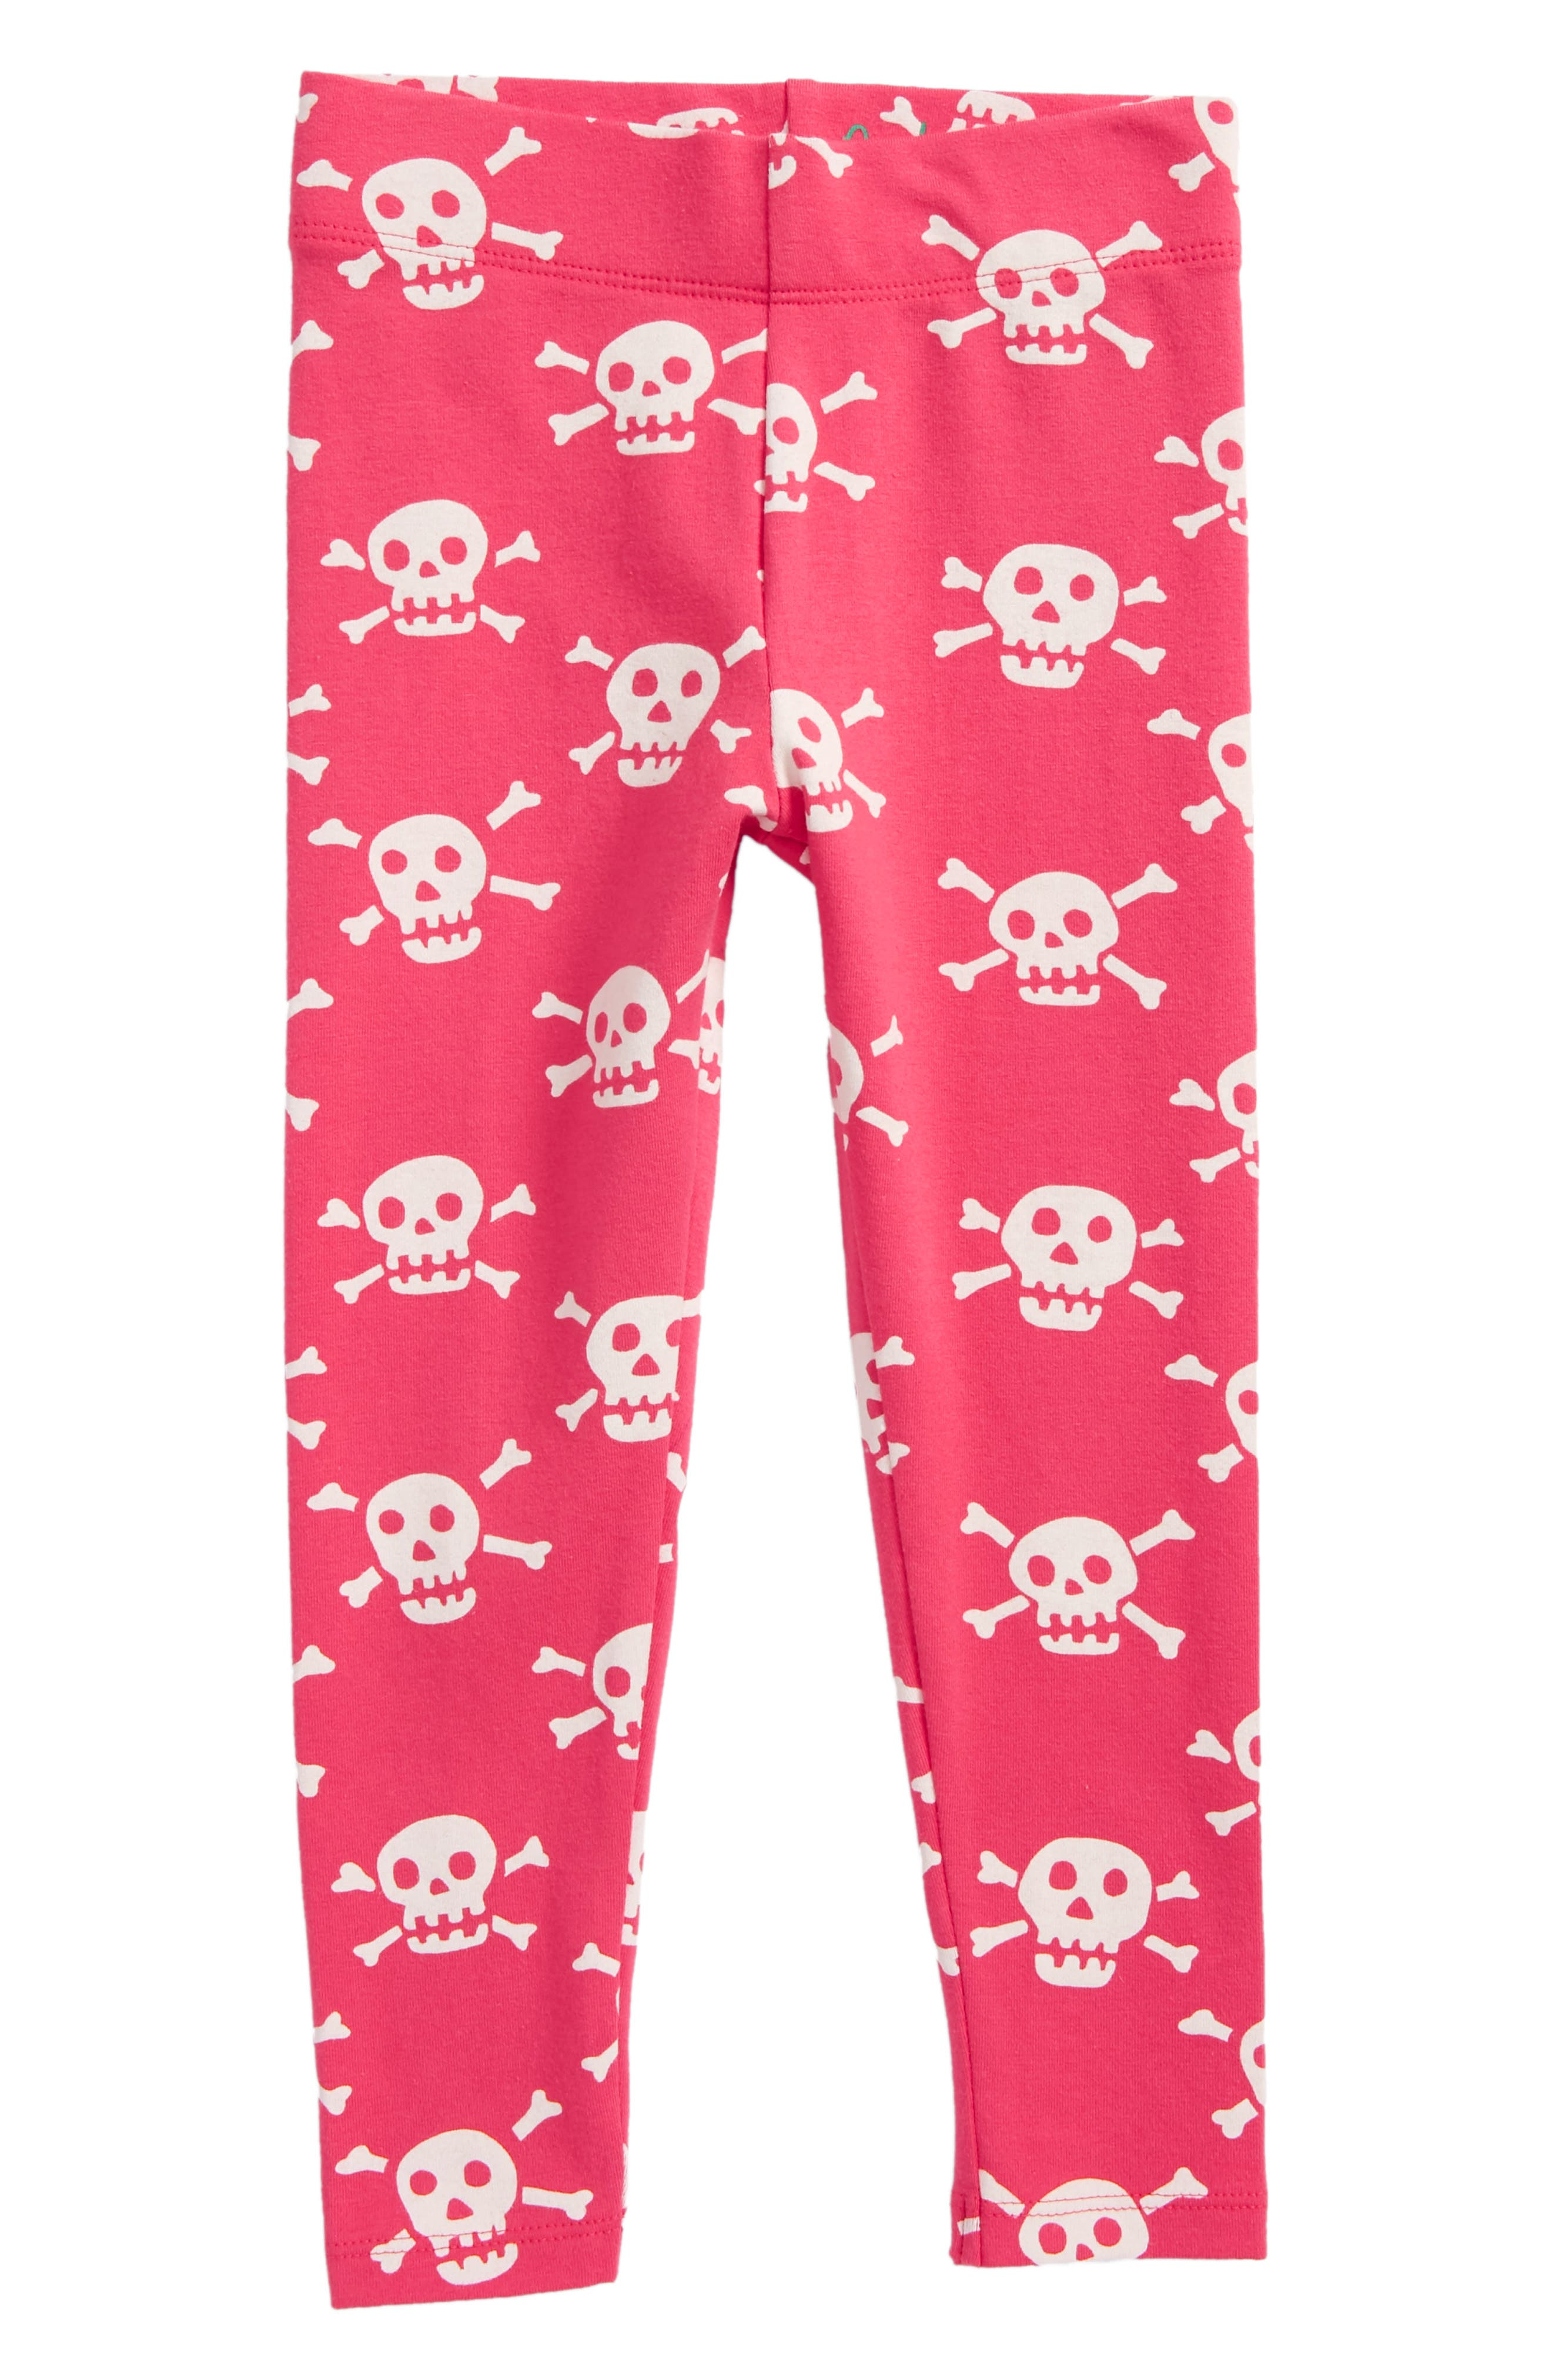 Alternate Image 1 Selected - Mini Boden Fun Leggings (Toddler Girls, Little Girls & Big Girls)